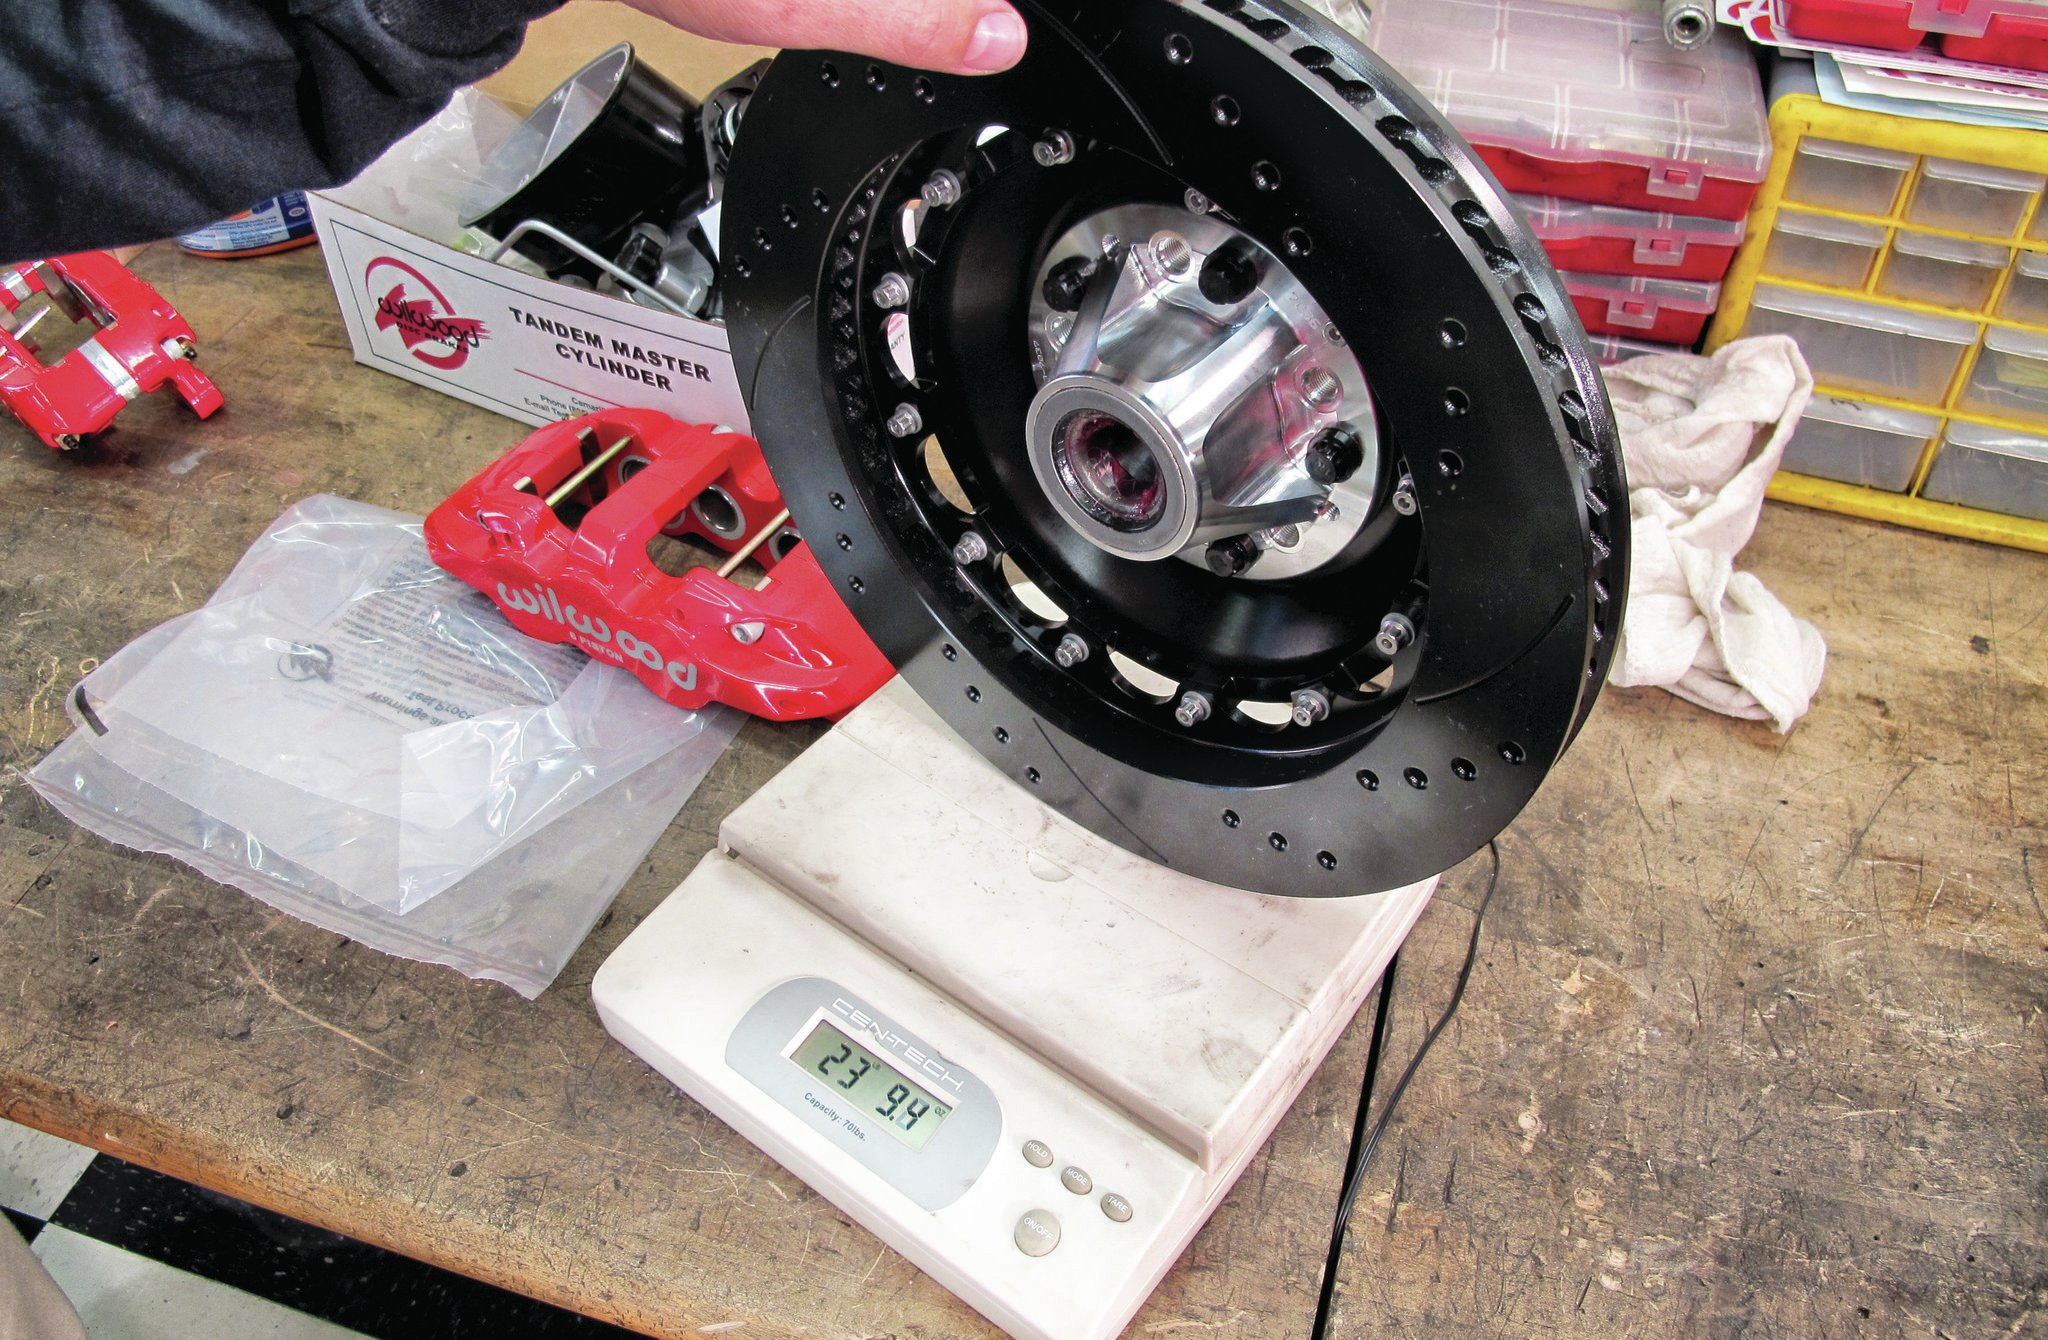 The 14-inch brakes weigh more than the old cast-iron parts, but they are a much larger part and work so much better that the penalty is worth the extra unsprung weight at each corner of the car. If you want to stop as hard as possible every time you hit the pedal, then go for the big brakes.